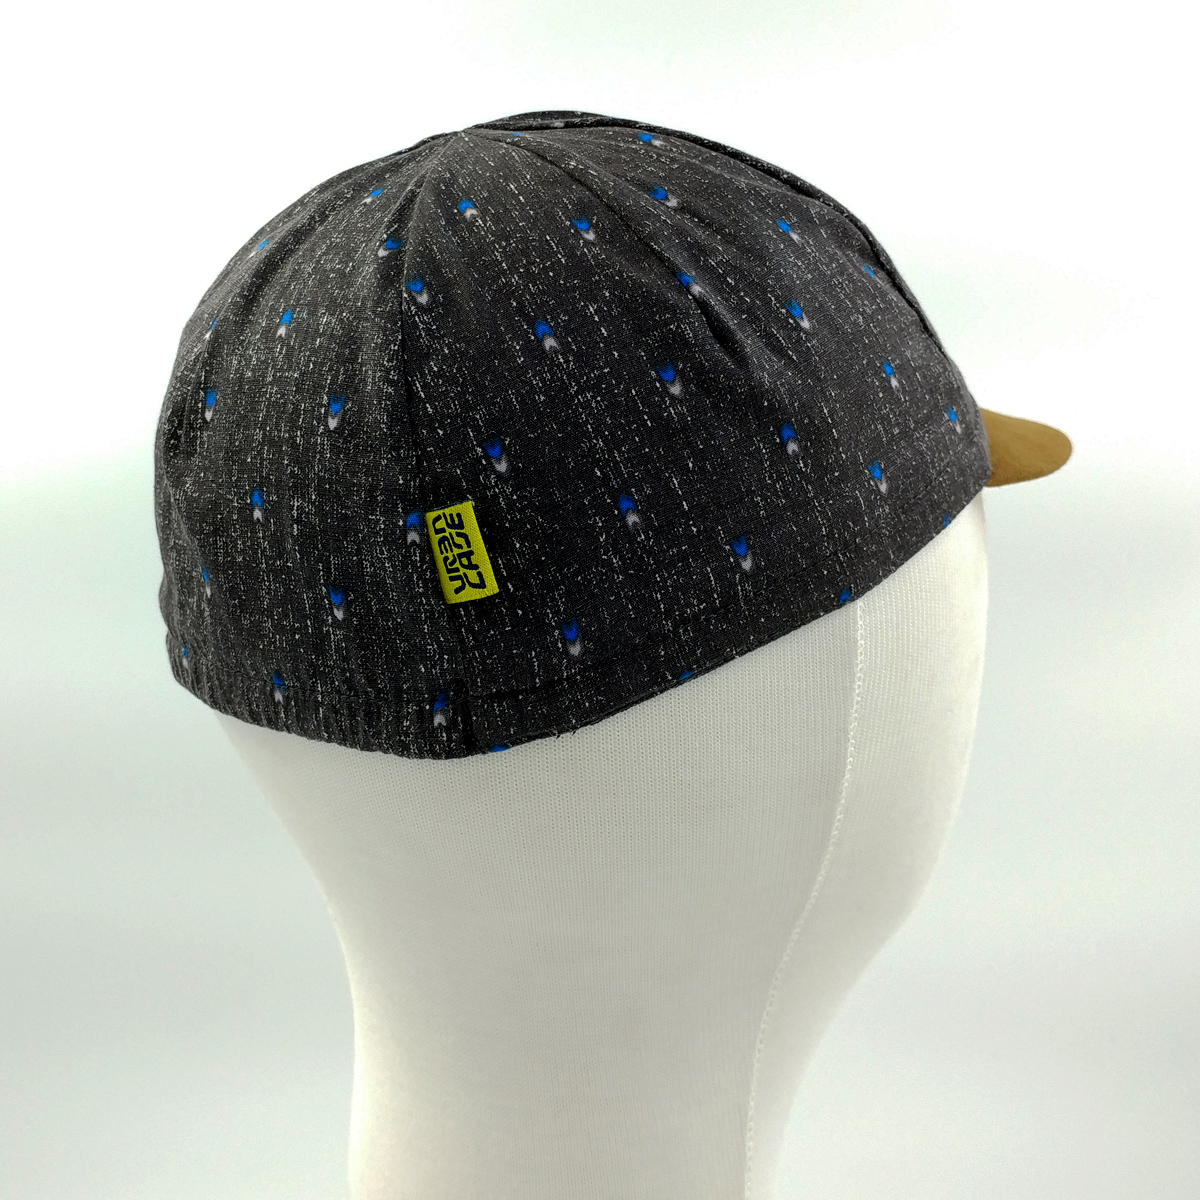 cycling cap - greyclue2